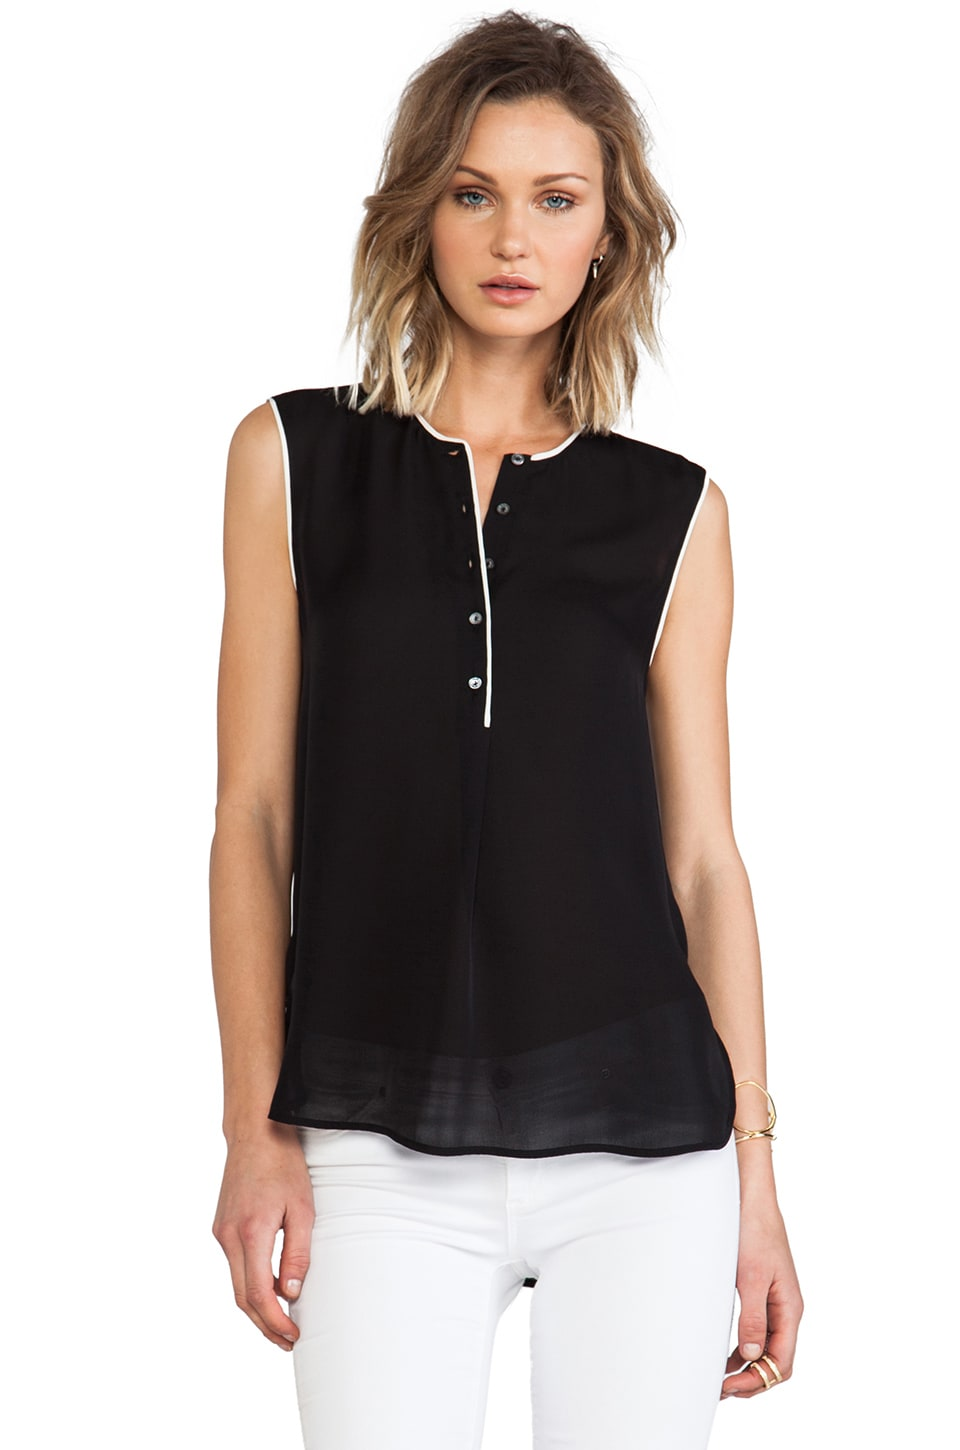 Vince Color Tipped Sleeveless Blouse in Black & Magnolia